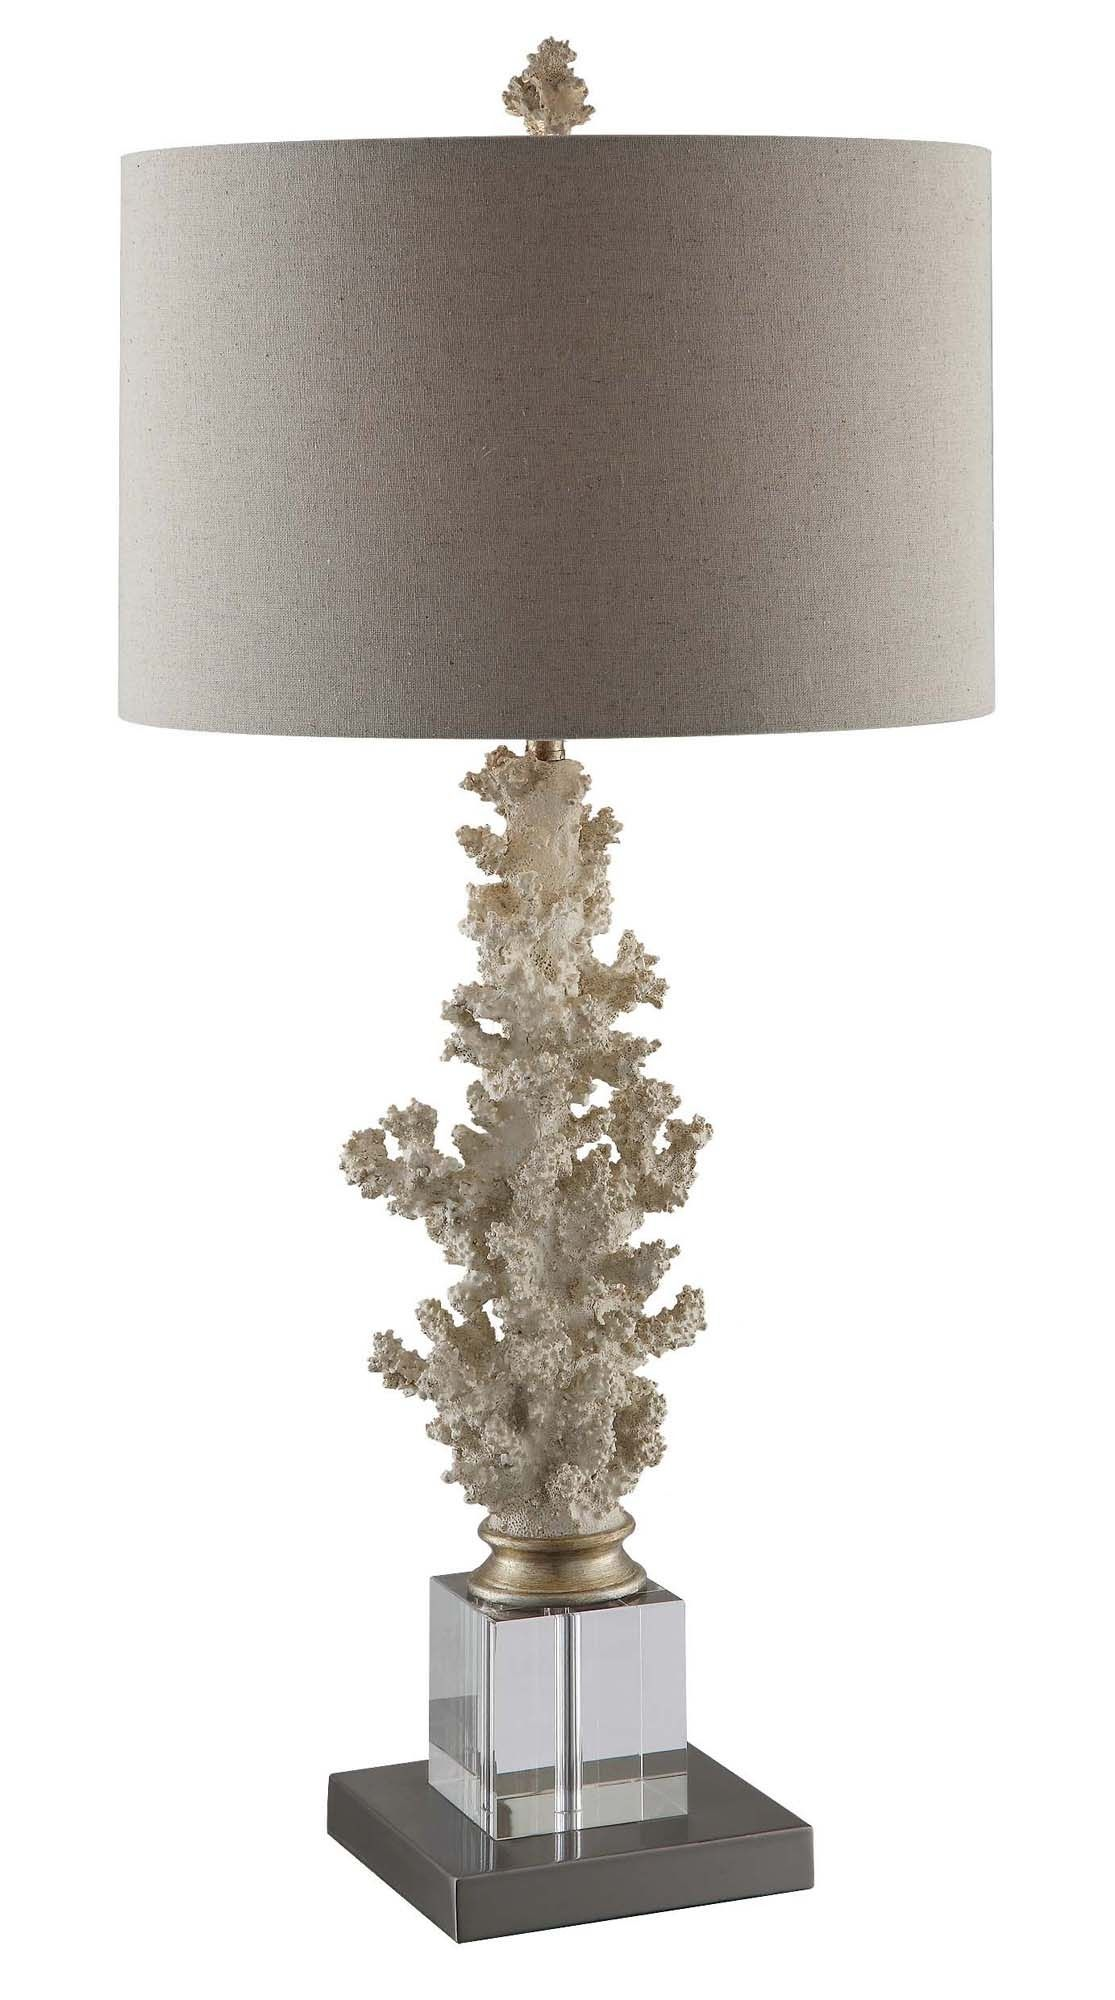 Coral gabels table lamp crestview collection home gallery coral gabels table lamp crestview collection home gallery stores geotapseo Gallery